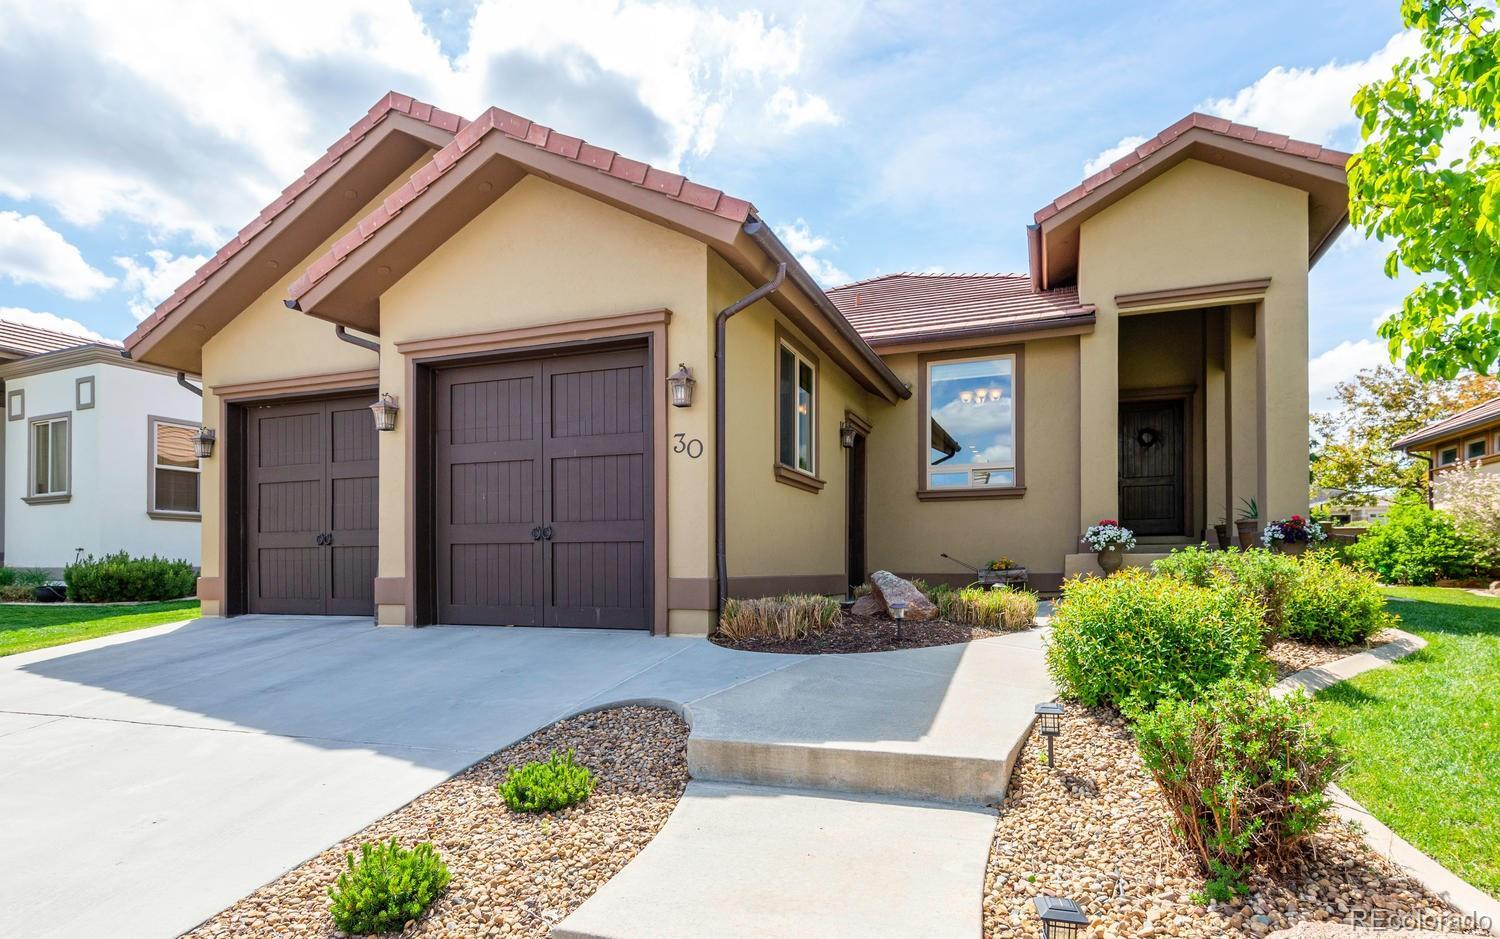 4014 S Lemay Avenue #30, Fort Collins, CO 80525 - #: 4869299